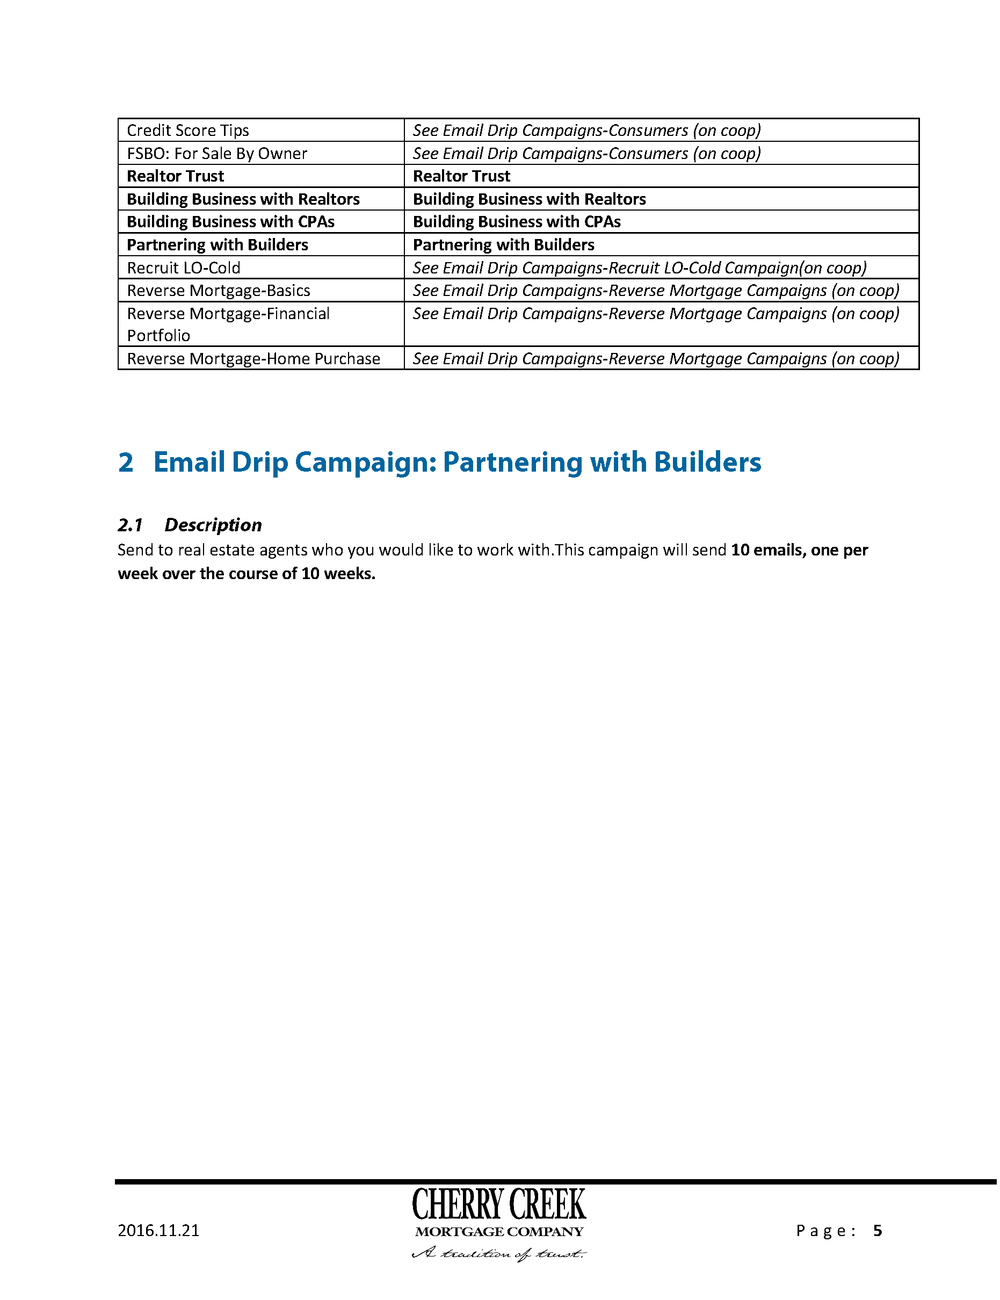 Jungo Email Drip Campaigns-Partner Campaigns_936fvYX_Page_05.png